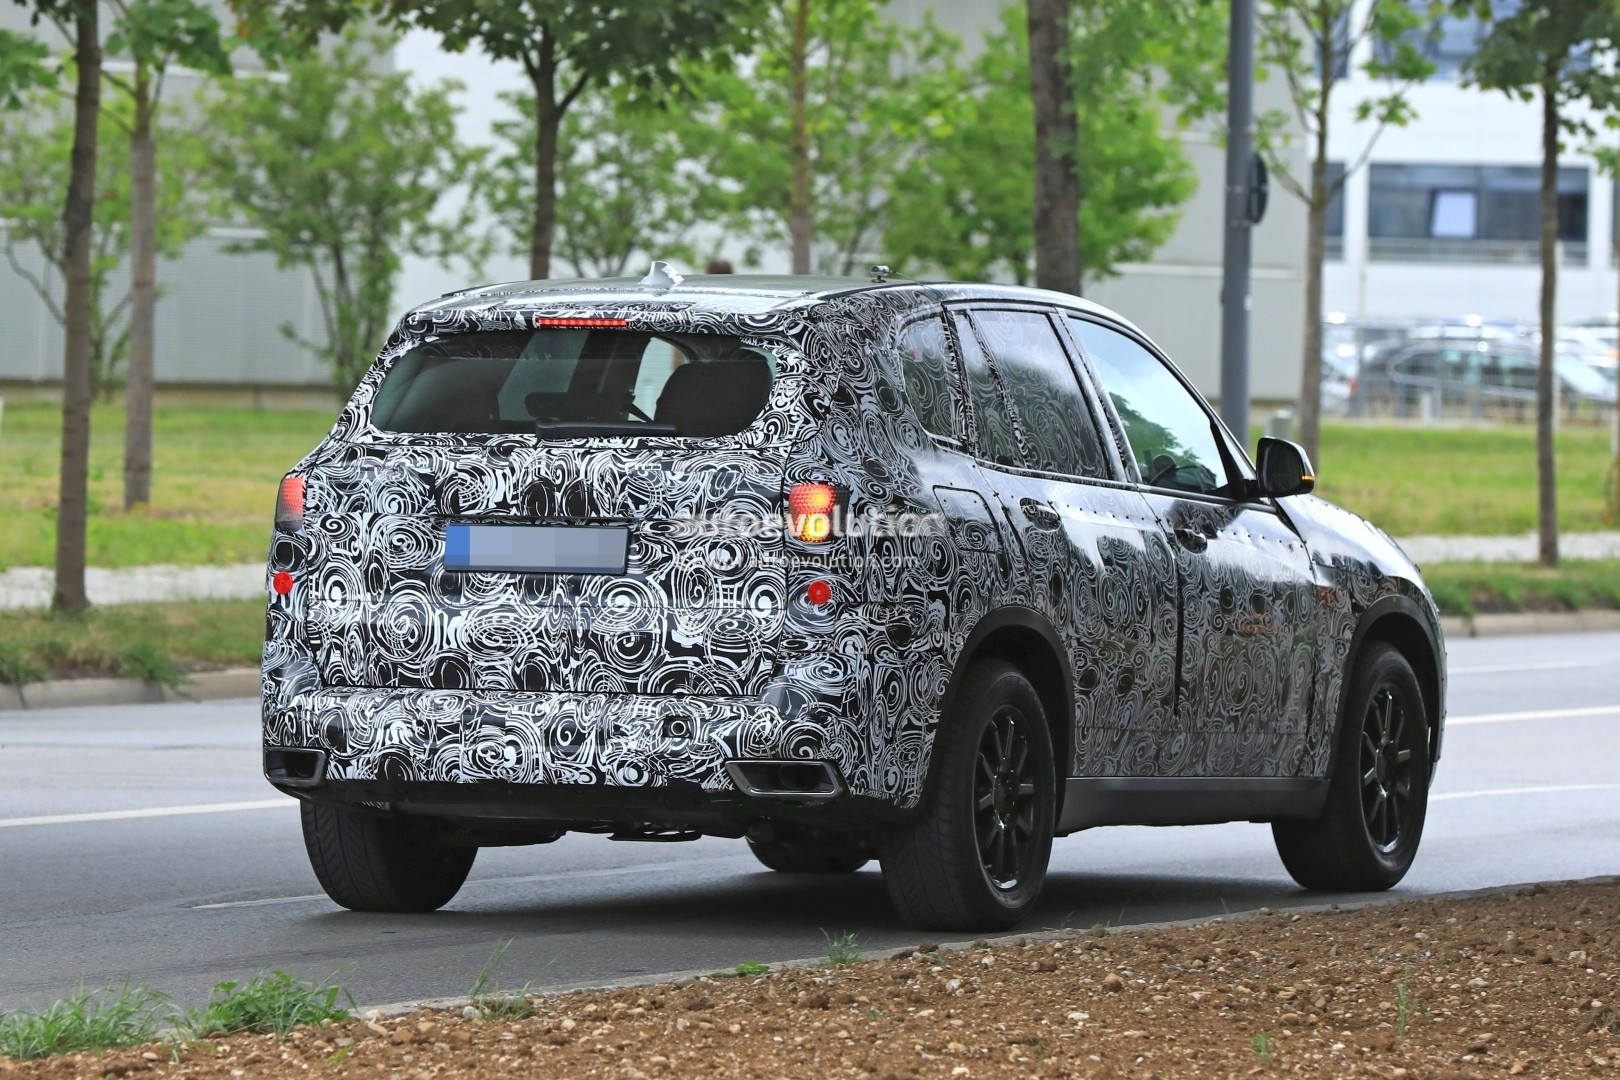 2019-bmw-x5-spied-prototype-reveals-new-angular-design-front-air-intakes_9